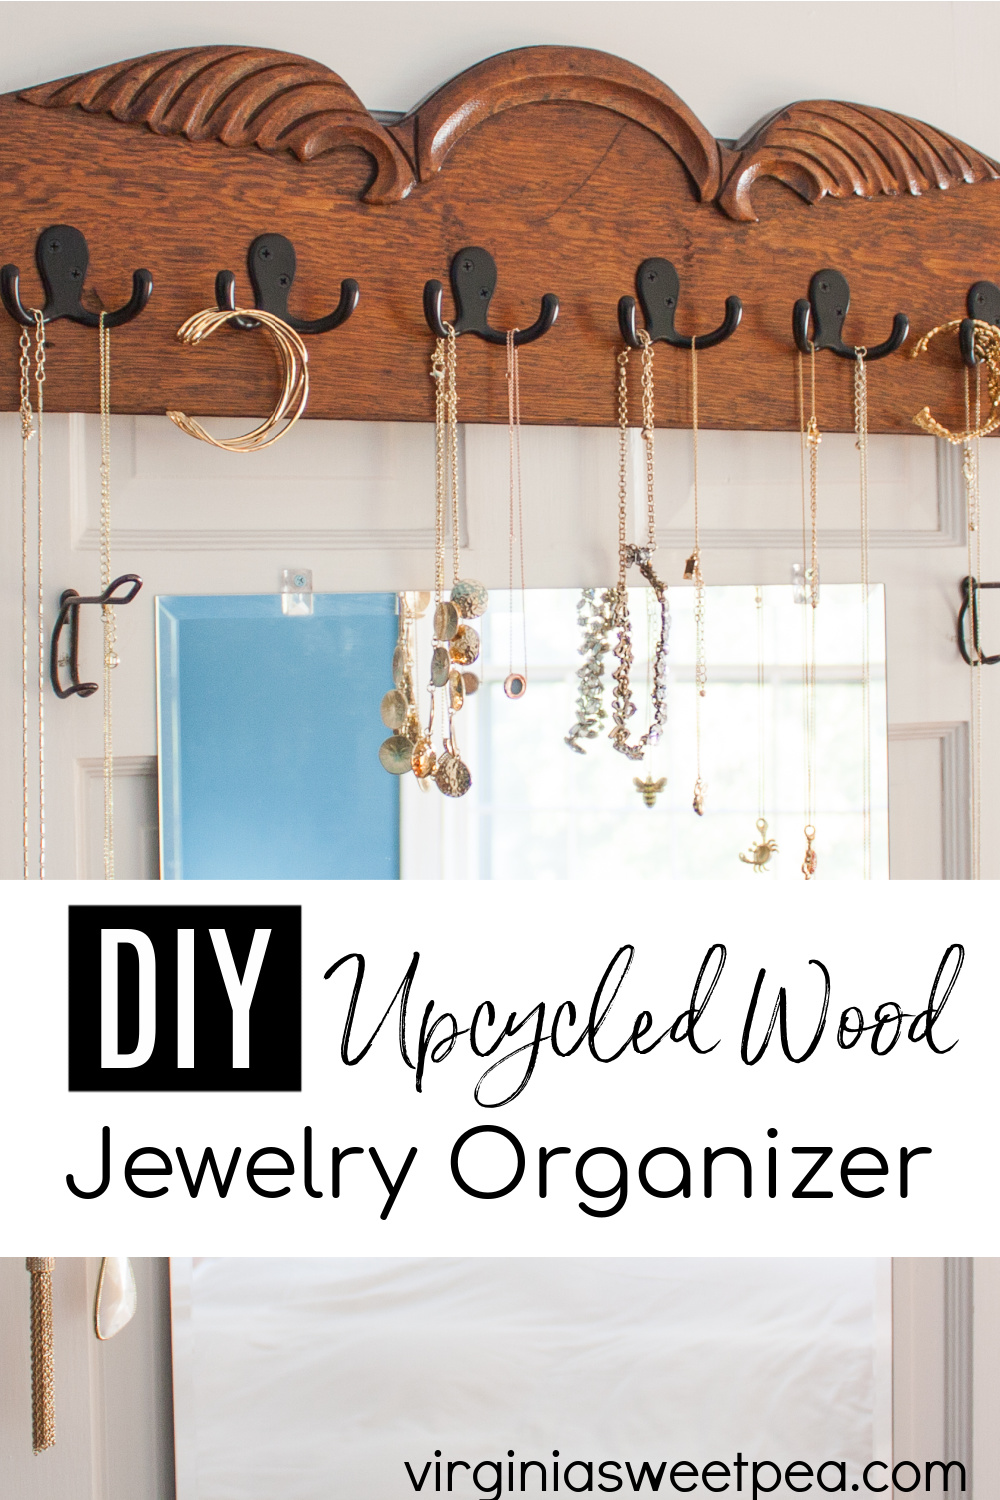 DIY Upcycled Wood Jewelry Organizer - Learn how to make a jewelry organizer to hang on a wall or closet door by following this step-by-step tutorial. This organizer keeps necklaces and bracelets organized and in sight. #diyjewelryorganizer #upcycledjewelryorganizer #woodworking #diyproject via @spaula